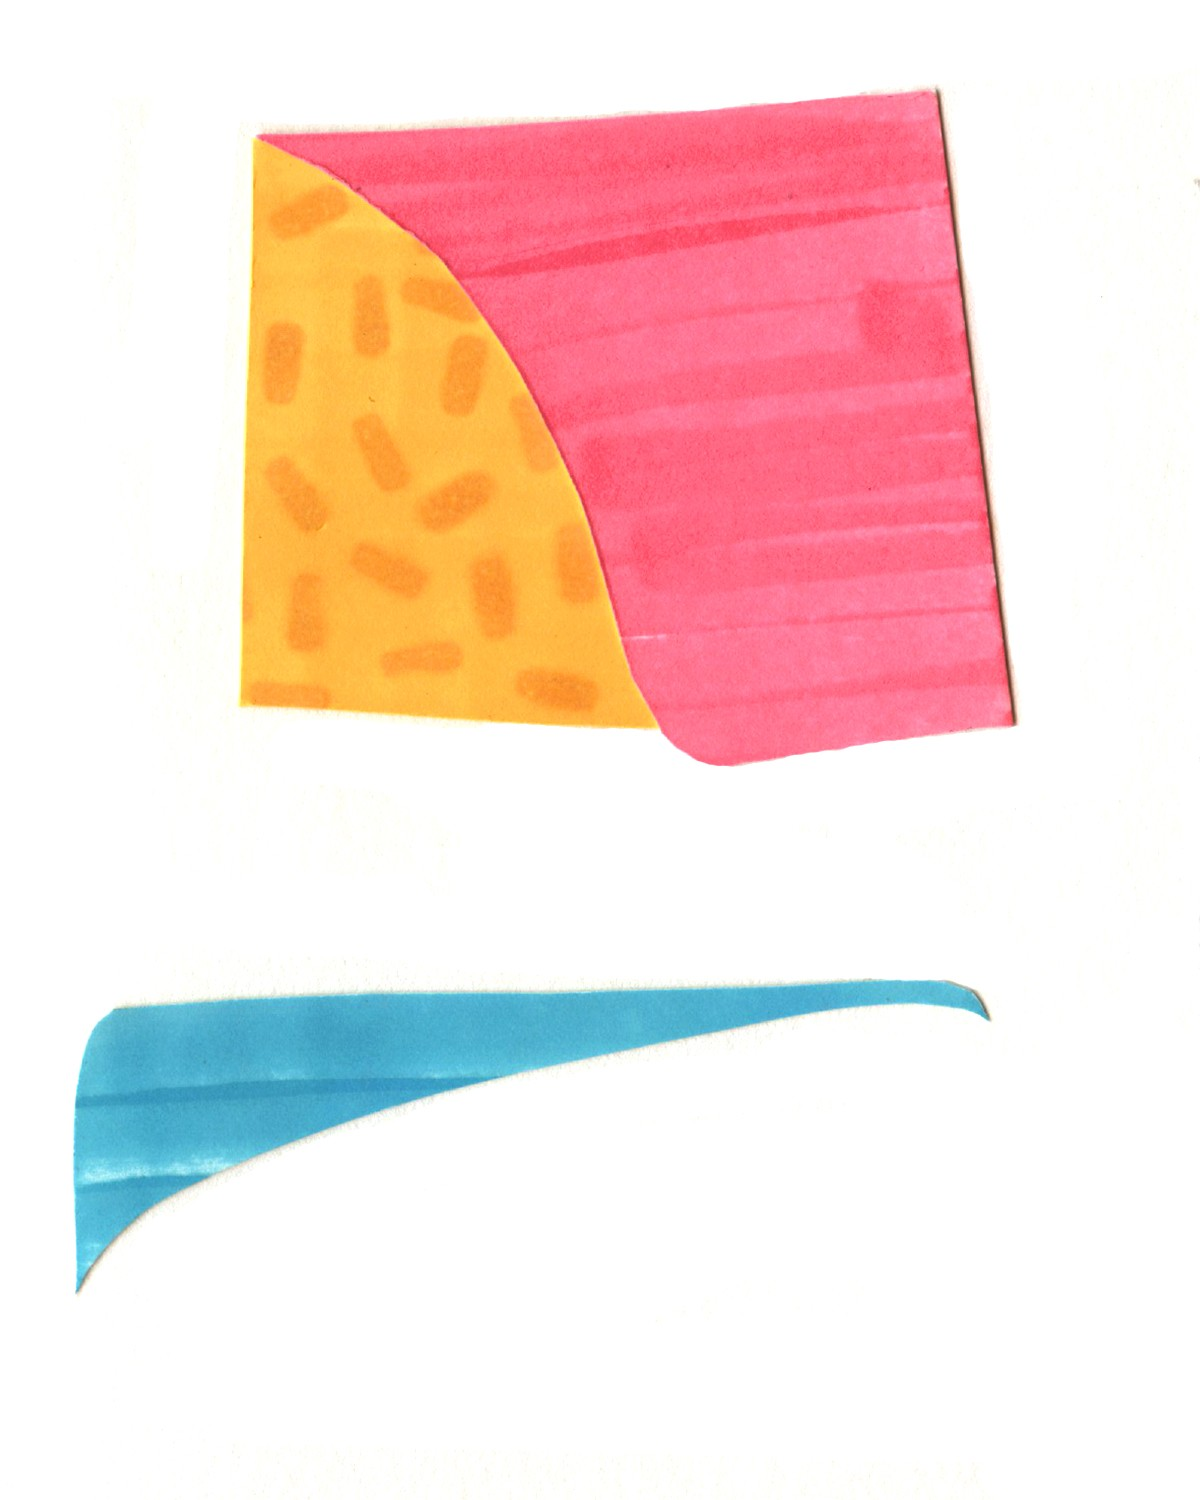 Collage with basic pink/yellow/blue shapes that illustrate girl looking sideways.